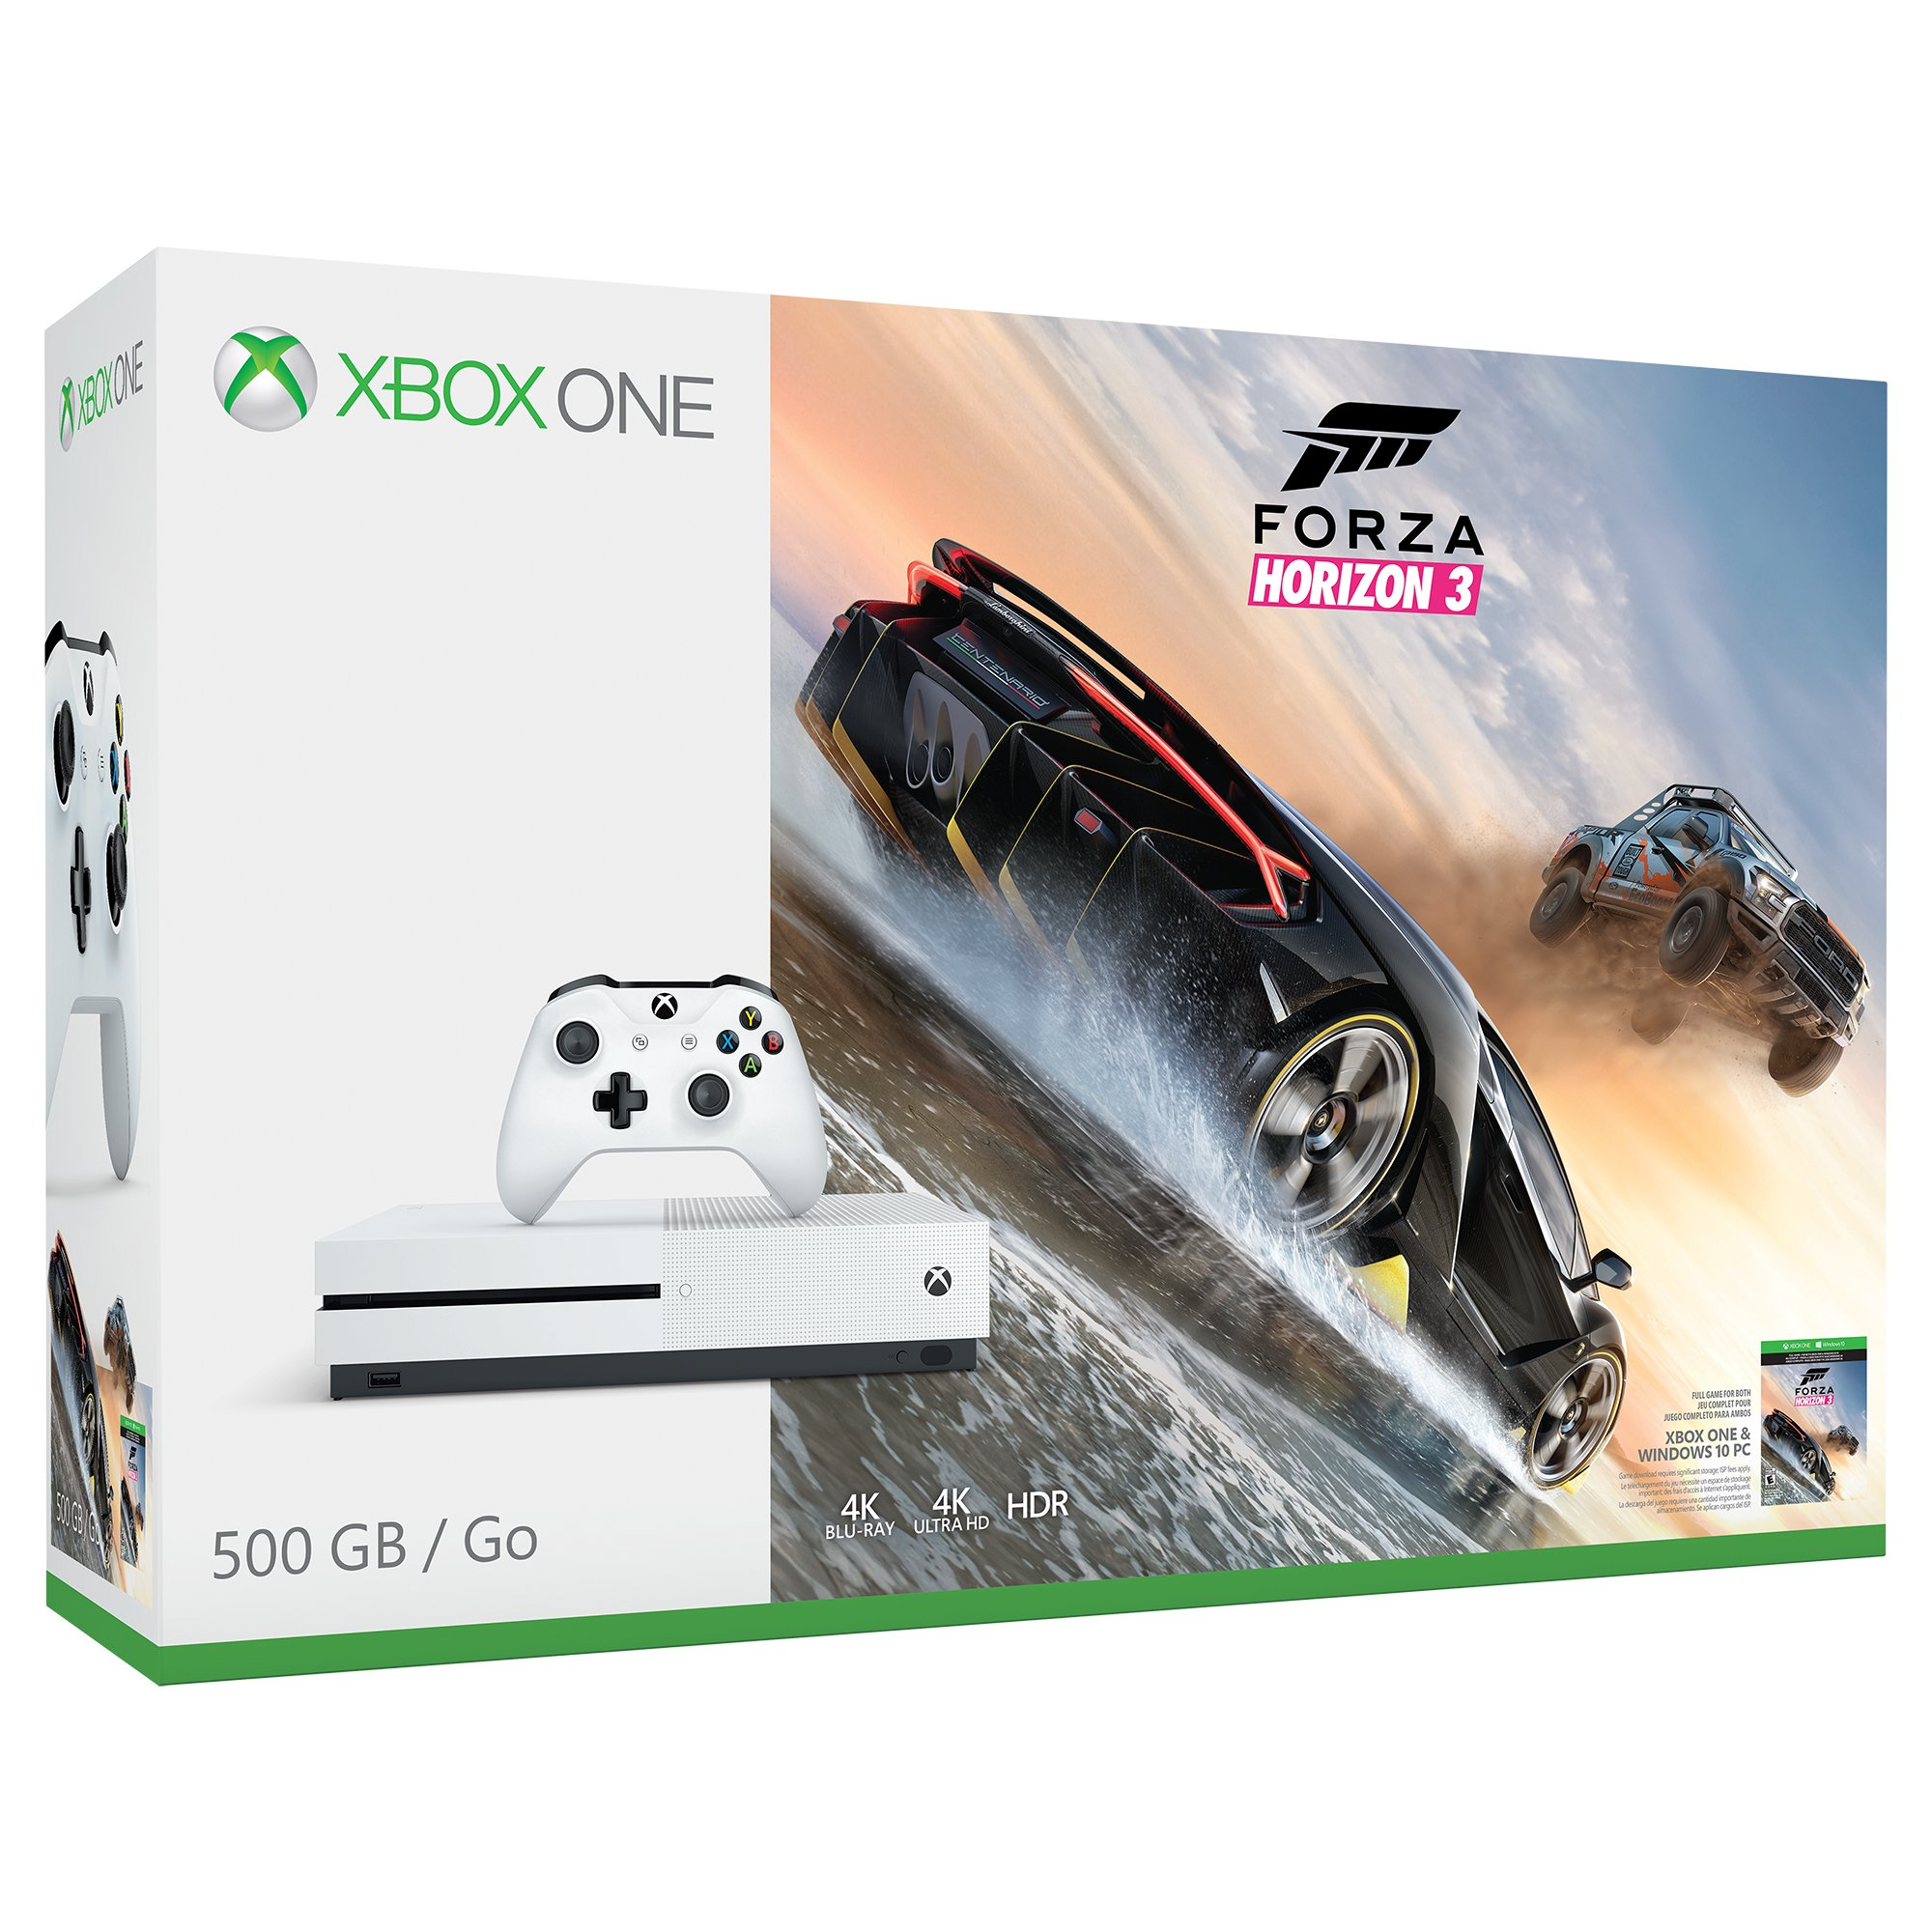 Xbox One S 500GB Console - Forza Horizon 3 Bundle [Discontinued]